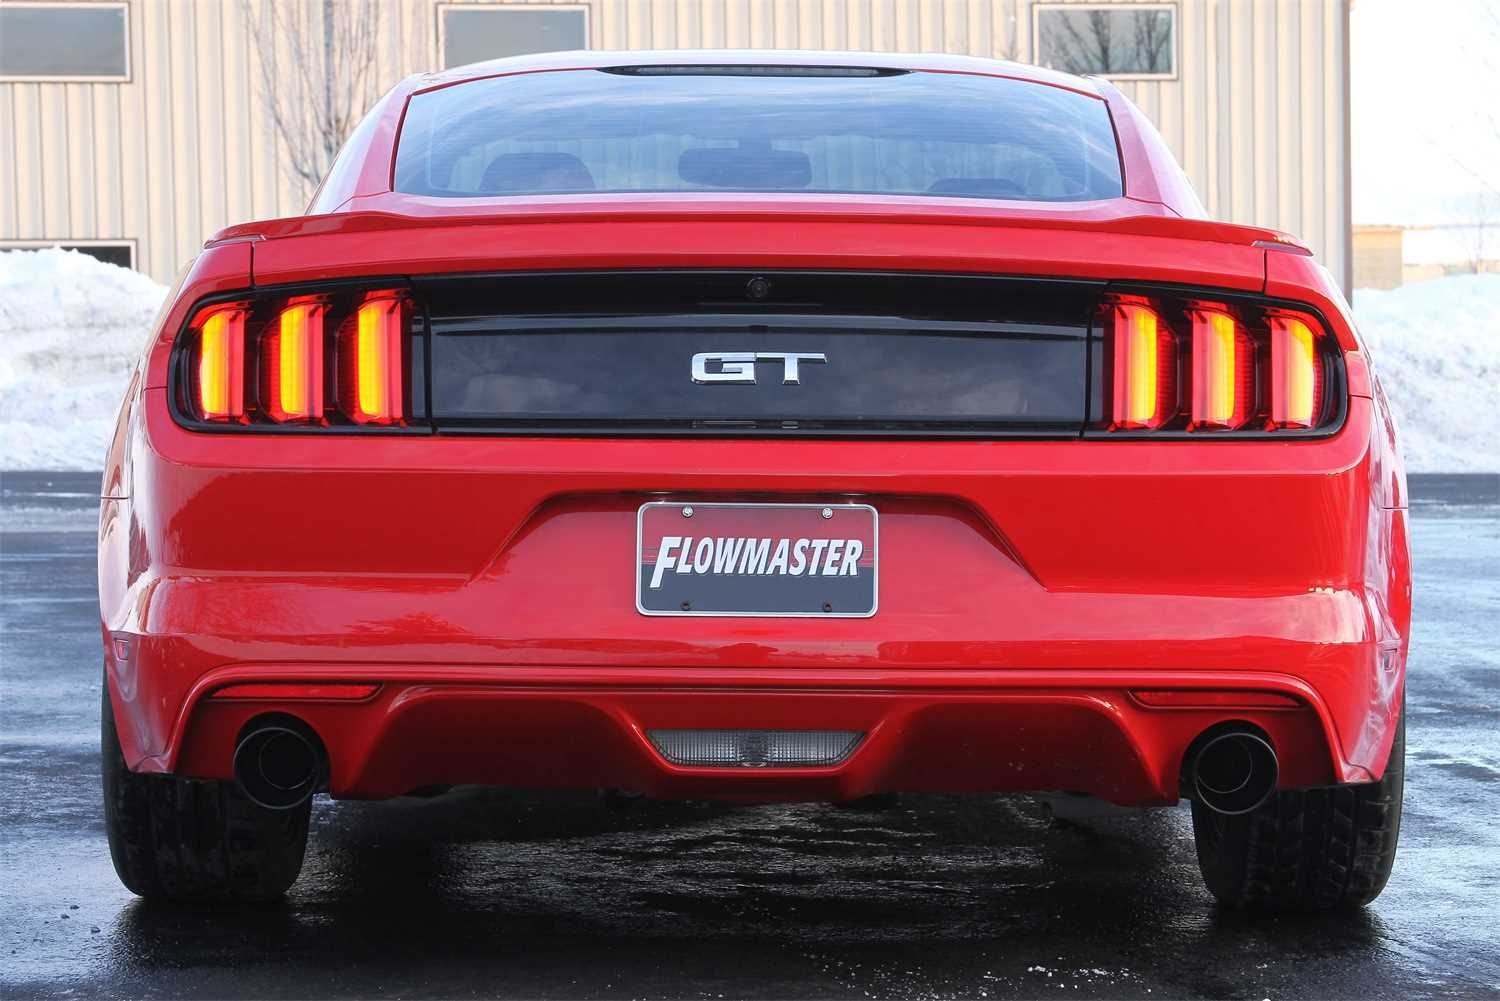 717903 Flowmaster FlowFX Axle Back Exhaust System